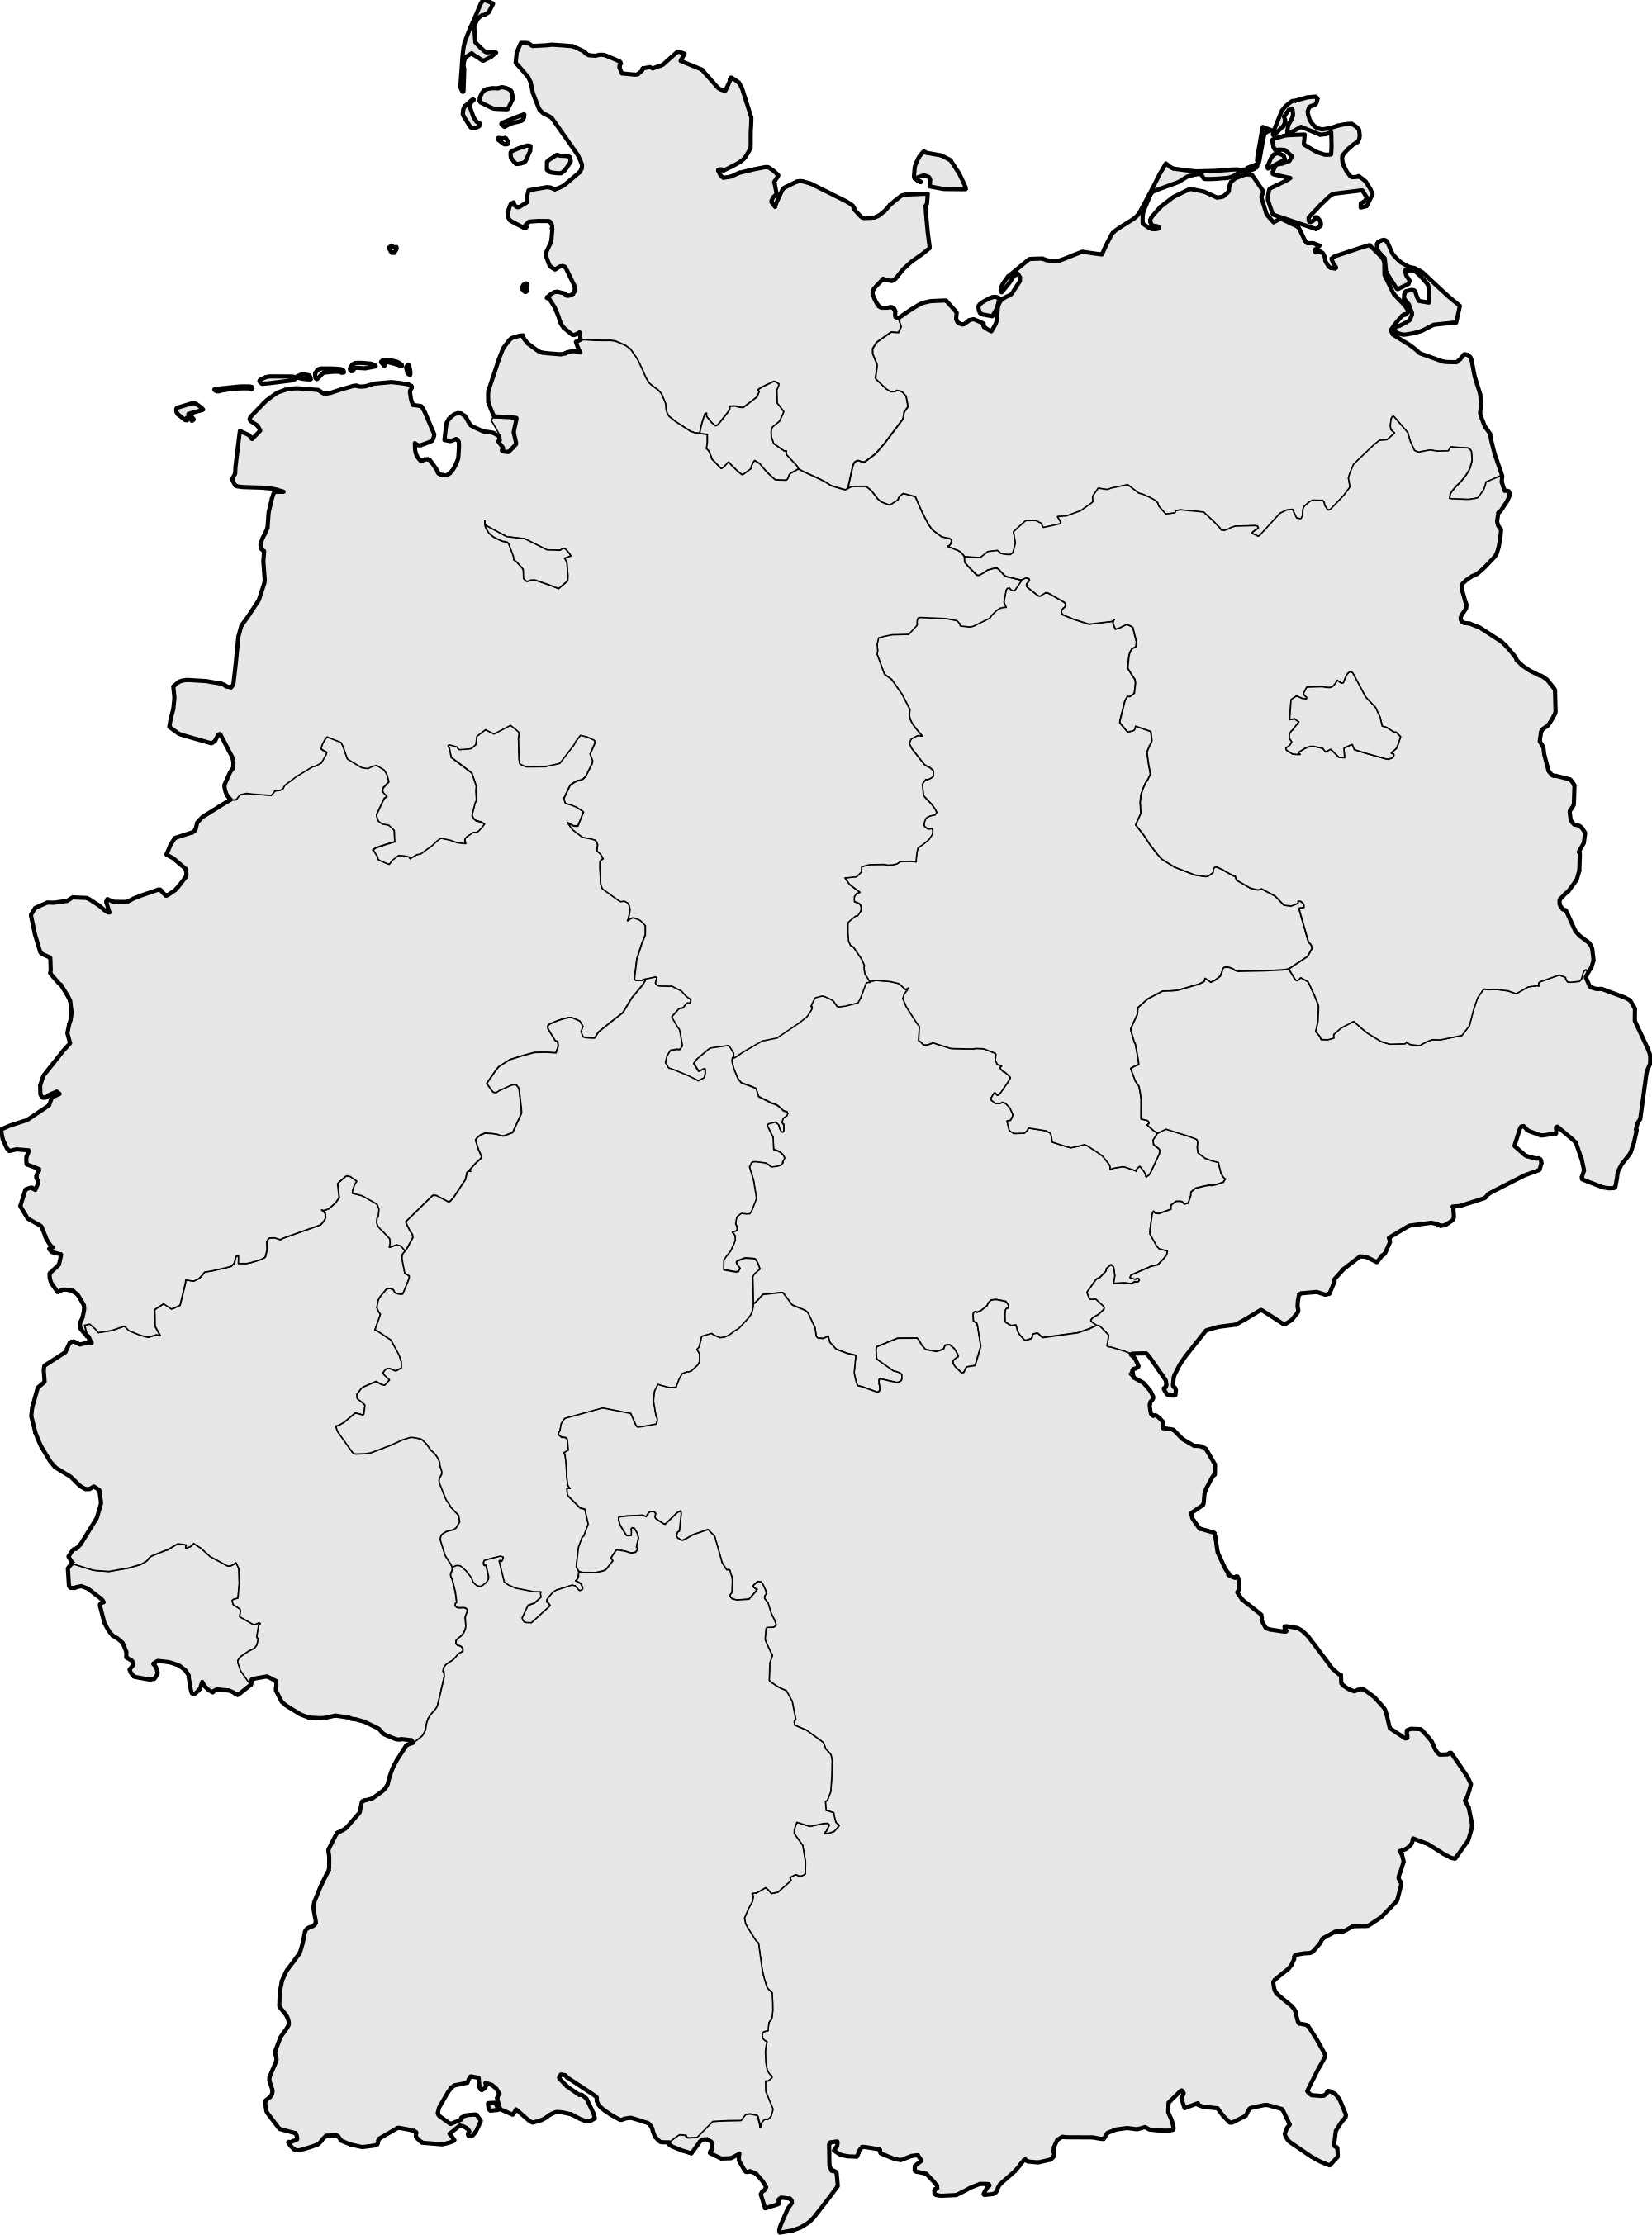 Germany Blank Map • Mapsof regarding Blank Map Of Germany And Surrounding Countries